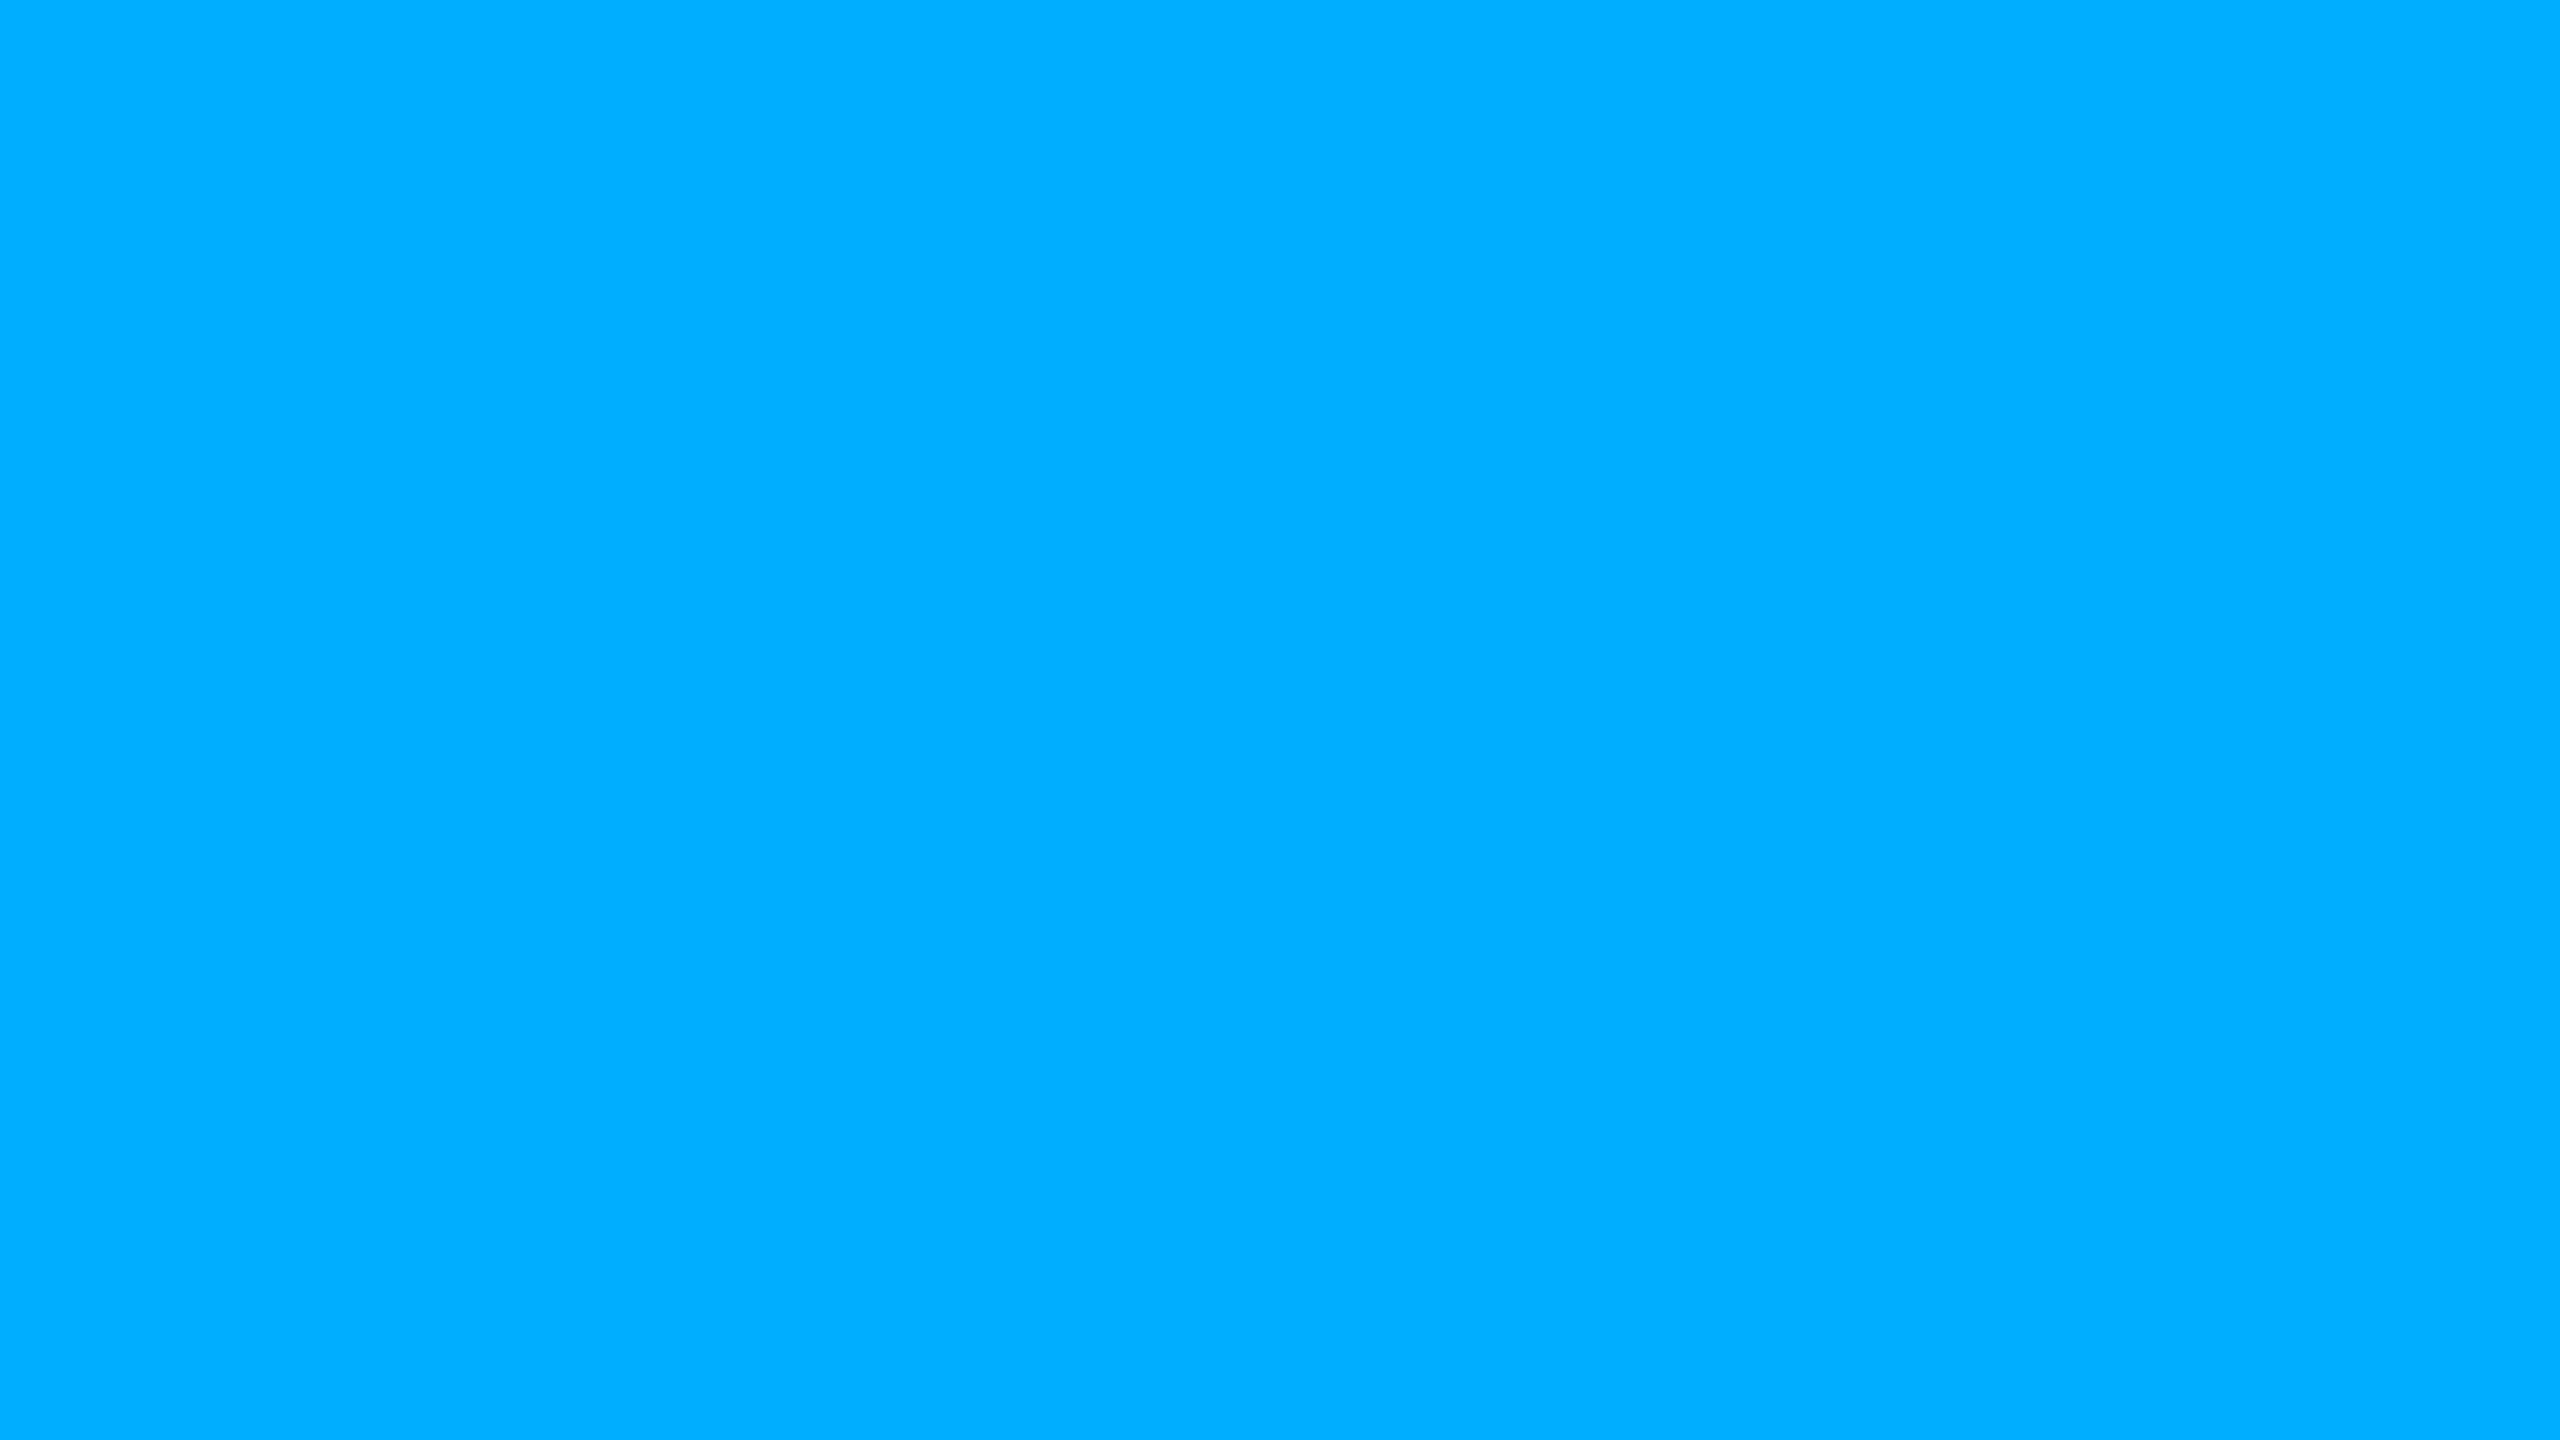 Blue Backgrounds (2560x1440 px, GDB16)